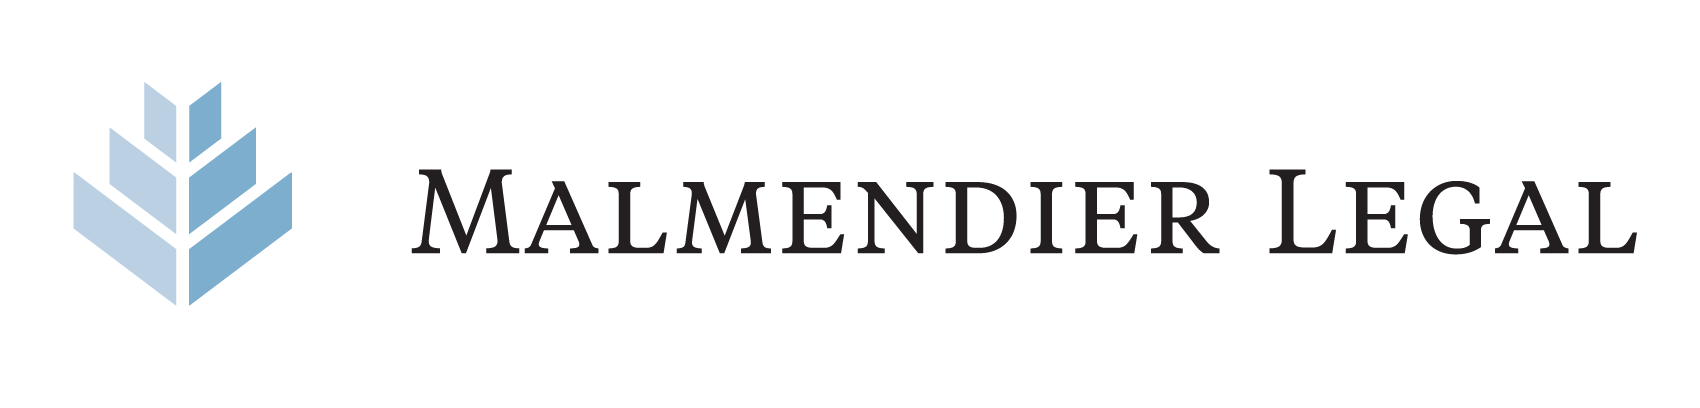 Malmendier Legal